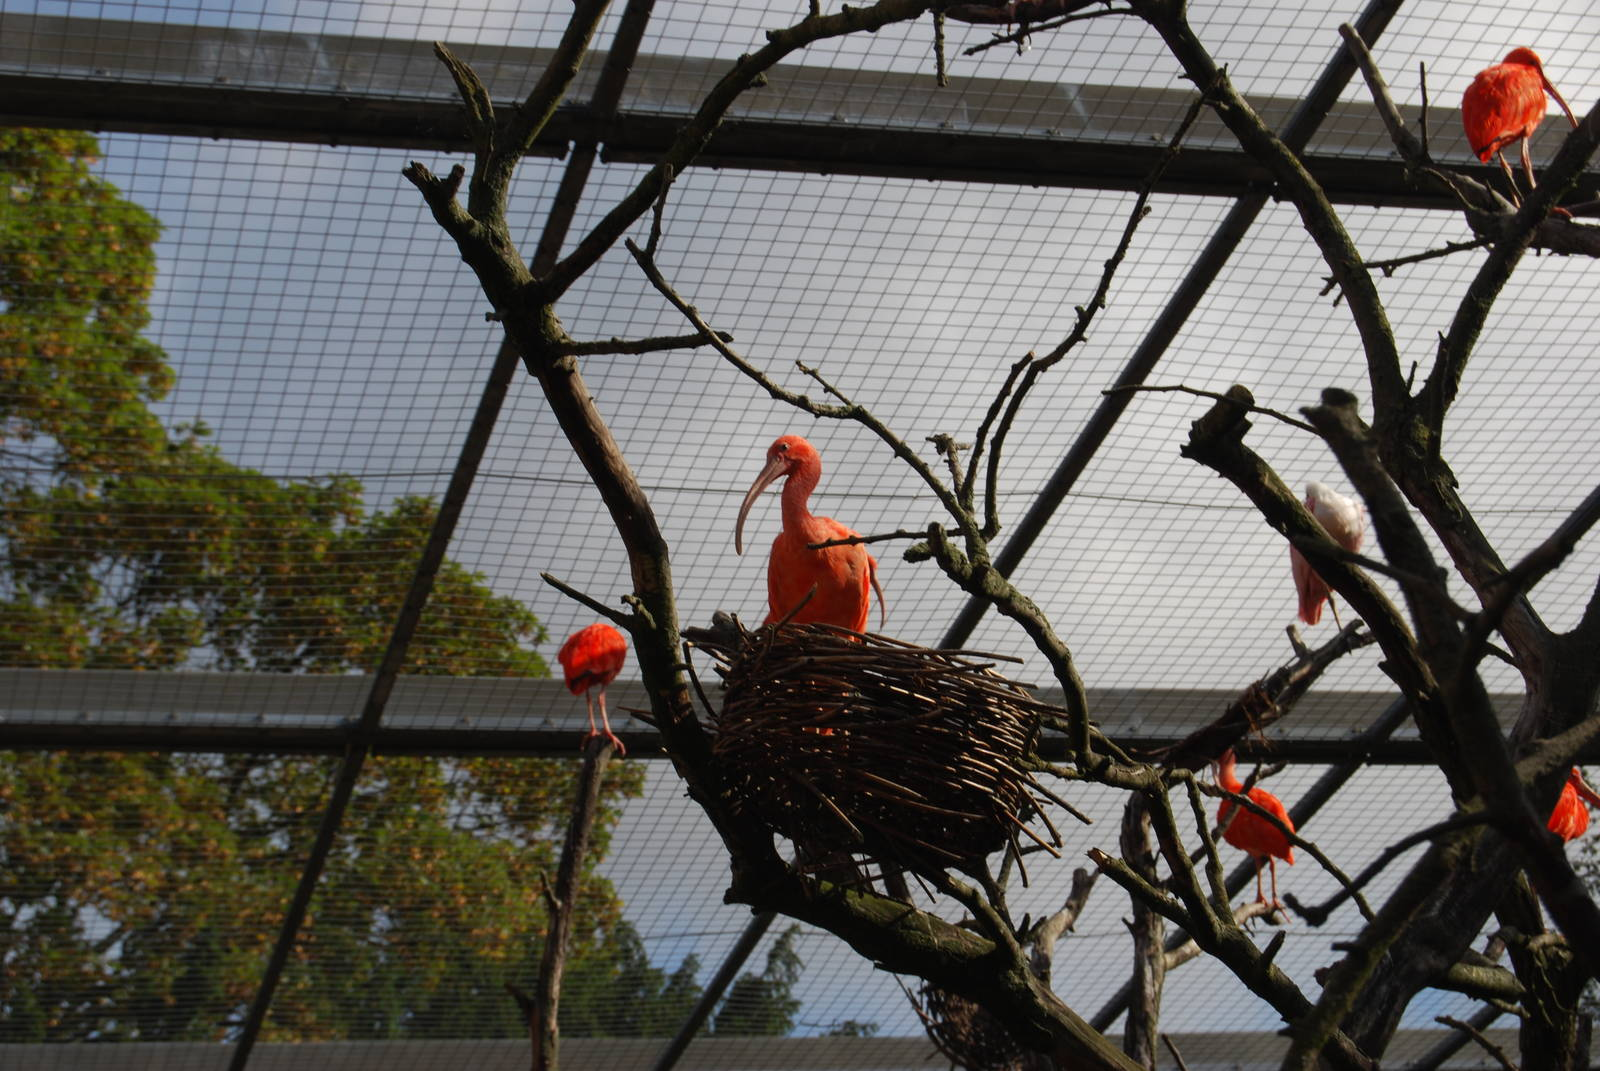 speed dating aviary Because pope fabian had not only raised doves but also had been selected for the papacy by a dove, he established a large aviary, that also served as his personal living quarters, in the papal residence.